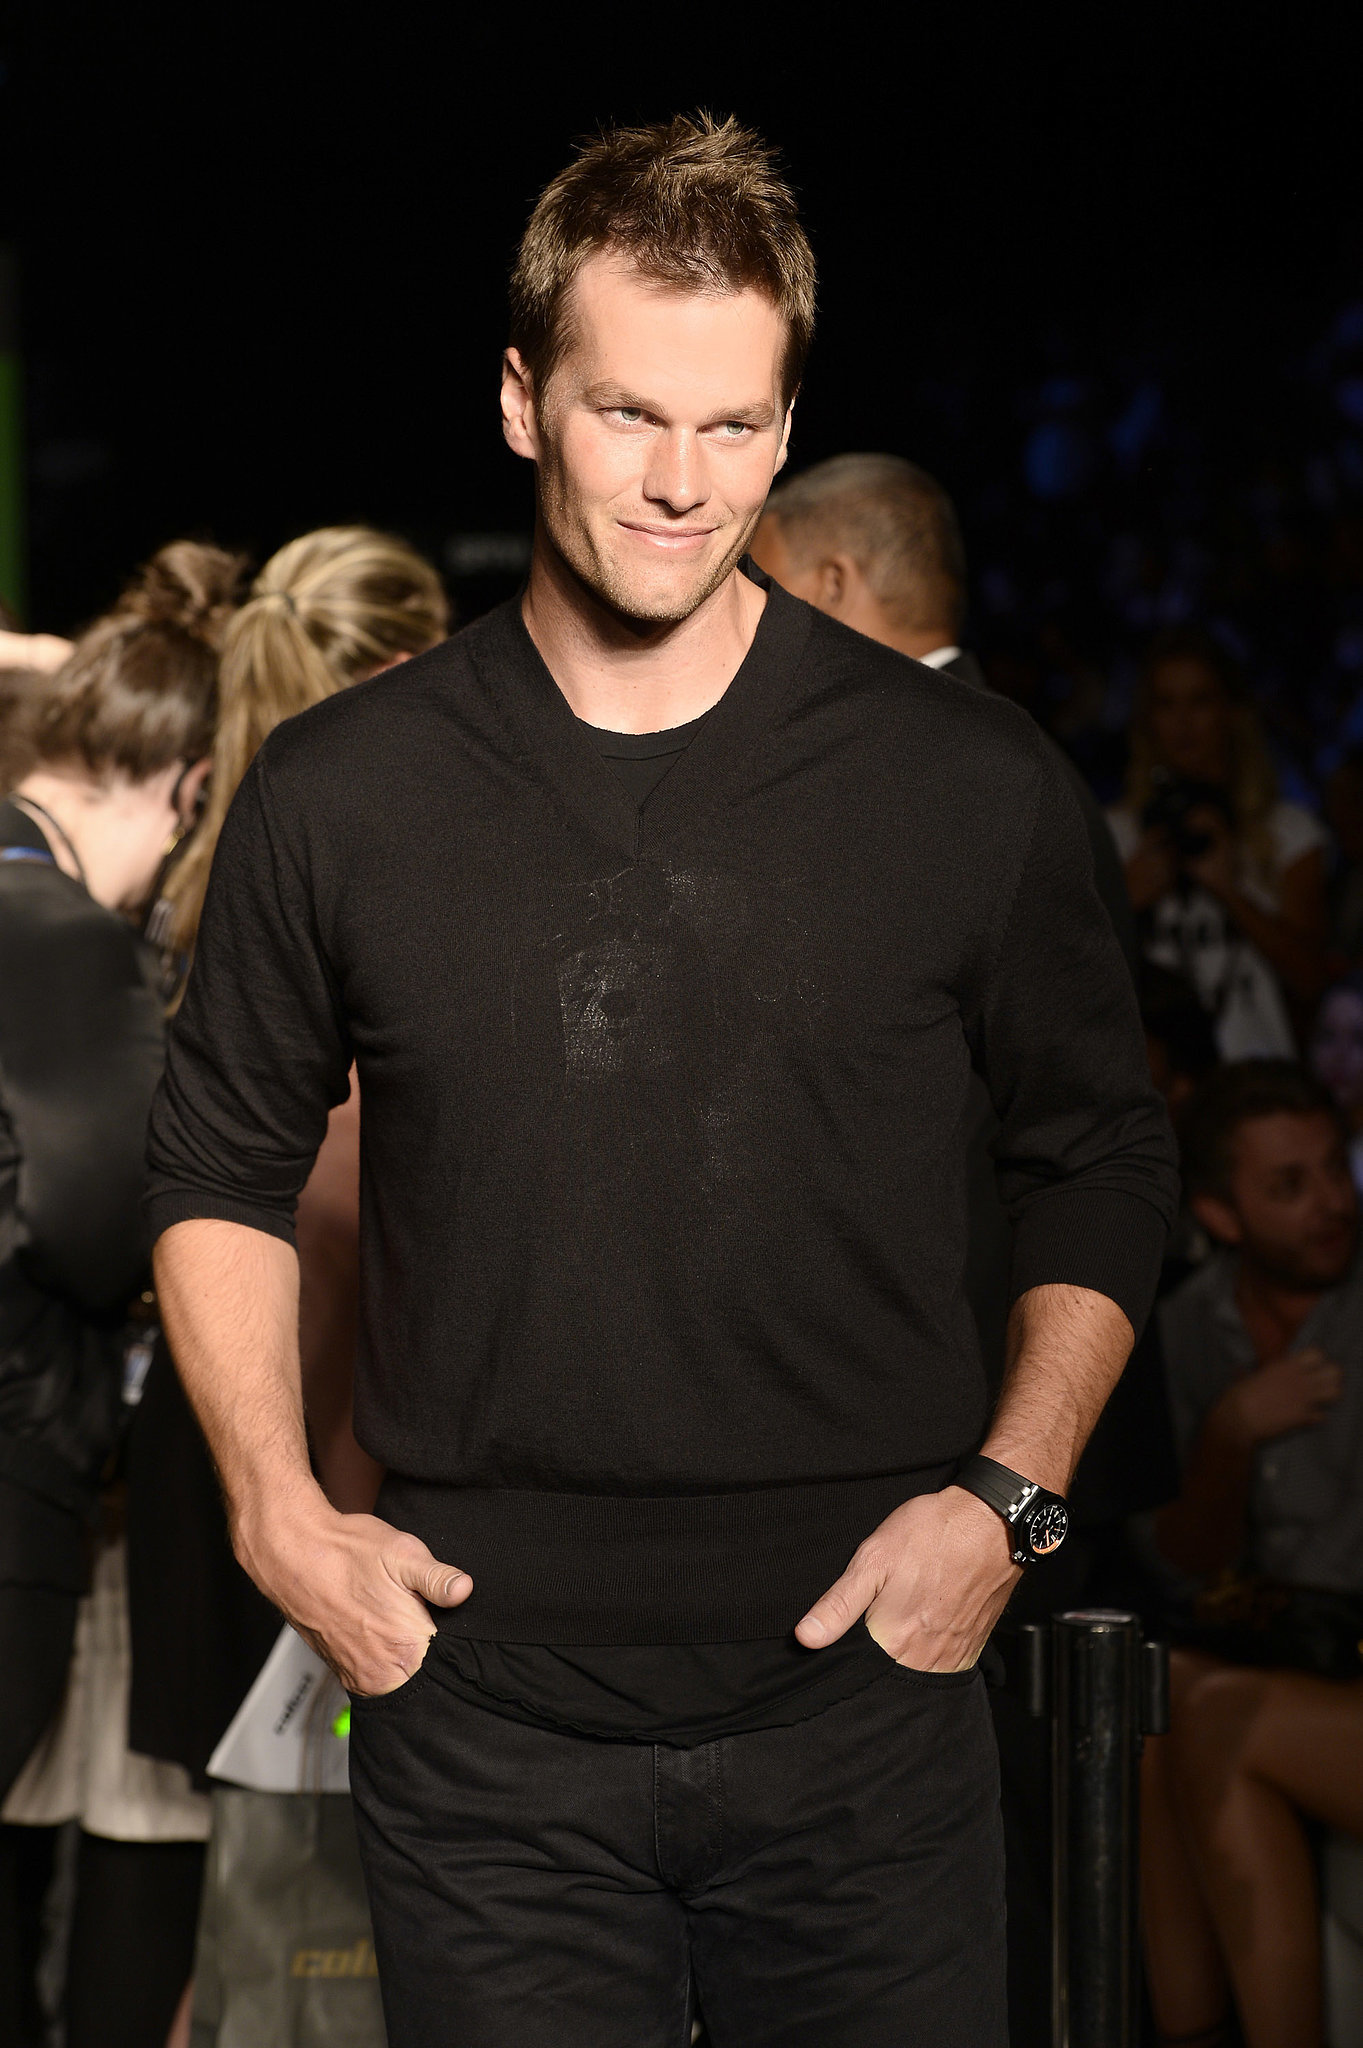 Tom Brady Is Gisele's Biggest — and Most Adorable! — Front-Row Fan